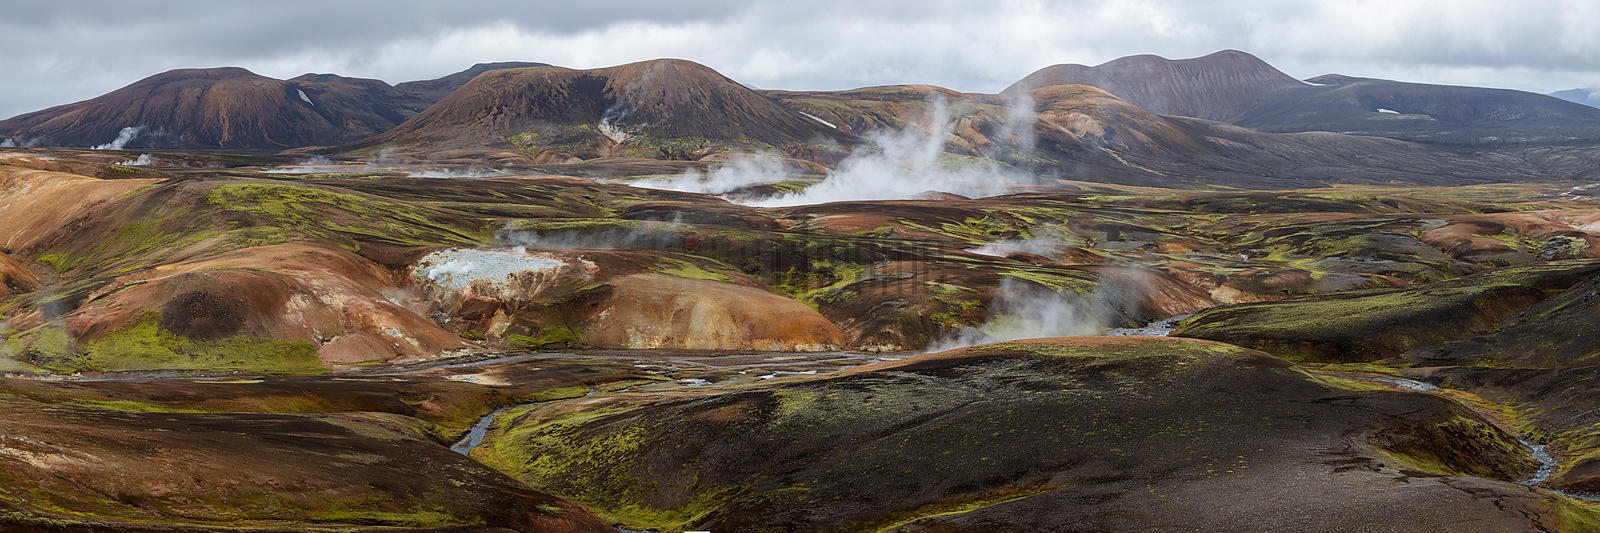 Panorama of a Geothermal Area in the Remote Highlands of Iceland